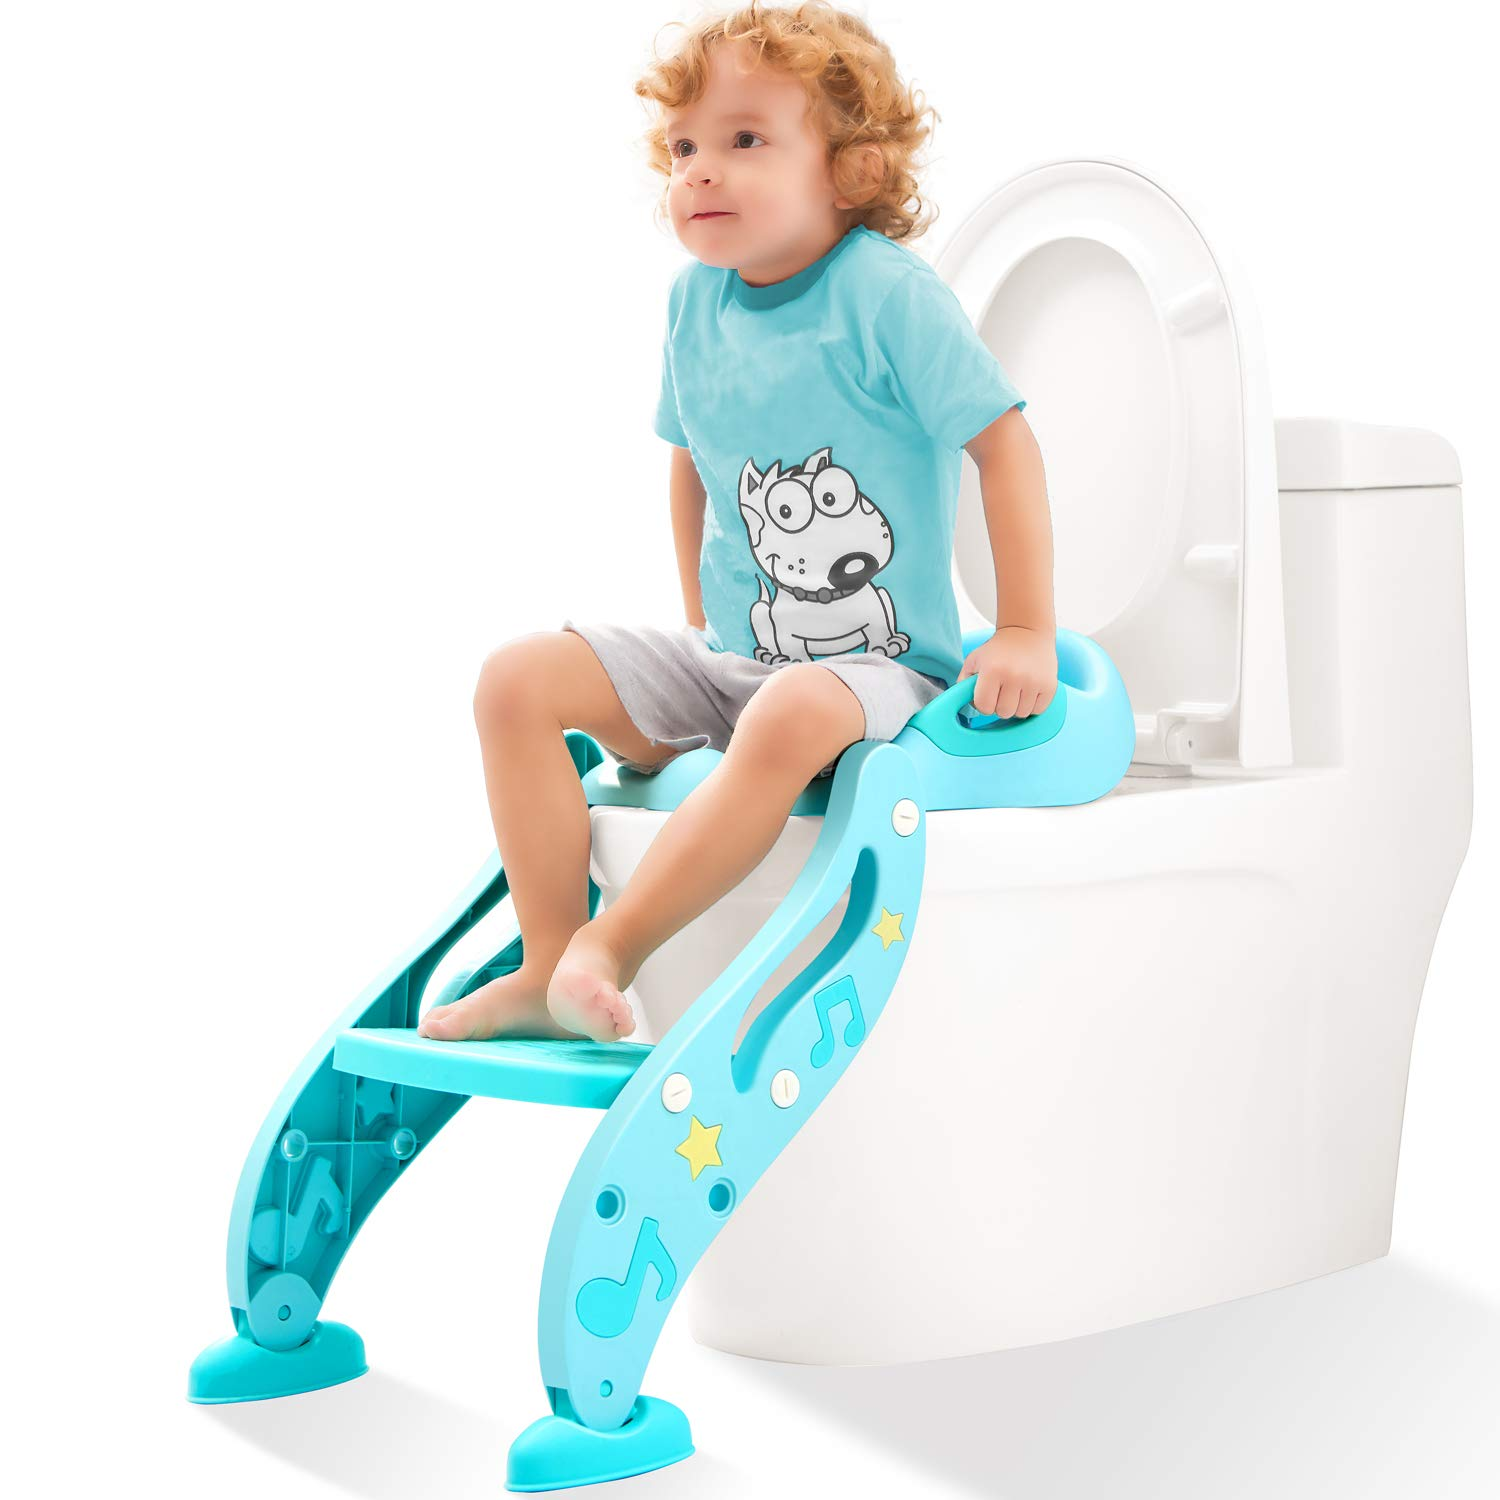 KIDPAR Potty Training Seat for Kids,Adjustable Toddler Toilet Potty Chair with Sturdy Non-Slip Step Stool Ladder, Comfortable Handles and Splash Guard, Easy to Assemble Toilet Seat for Boys and Girls KD188